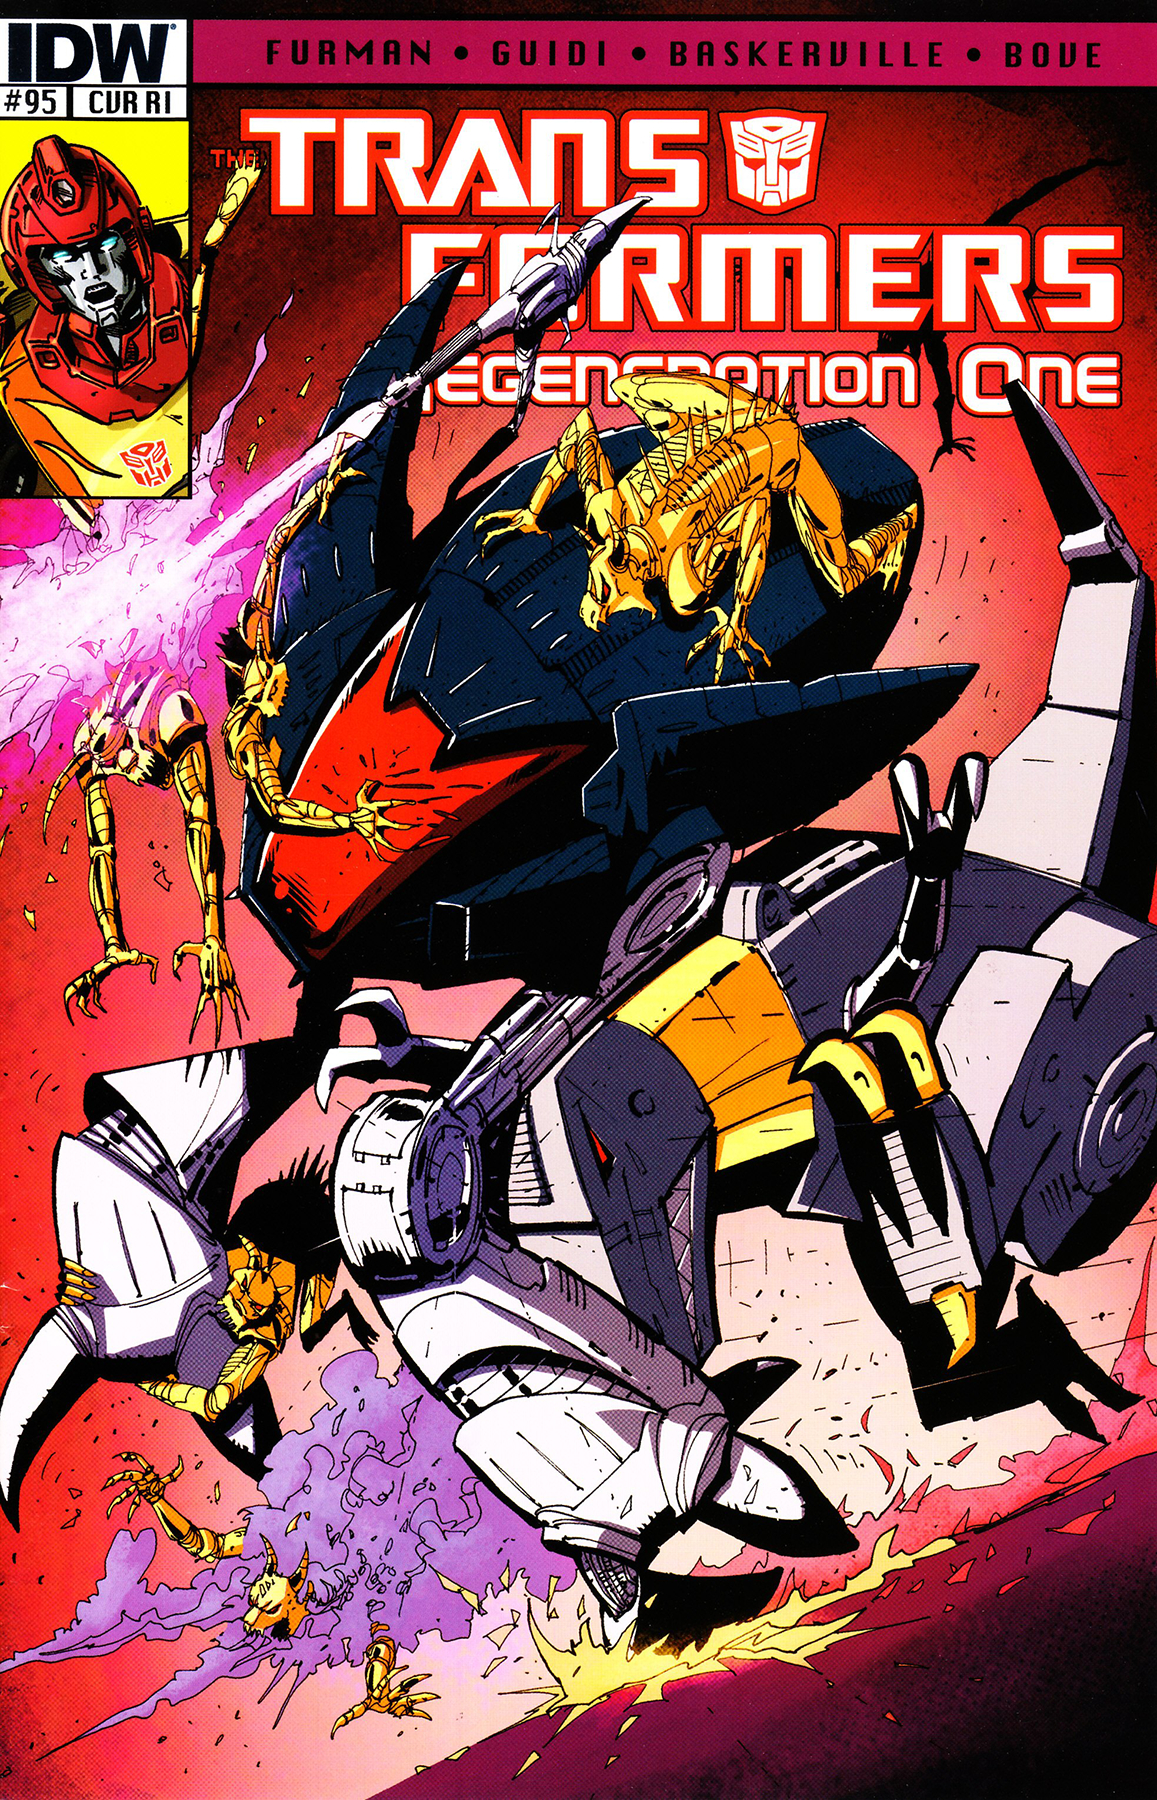 TRANSFORMERS REGENERATION ONE #95 FREE 10 COPY INCV